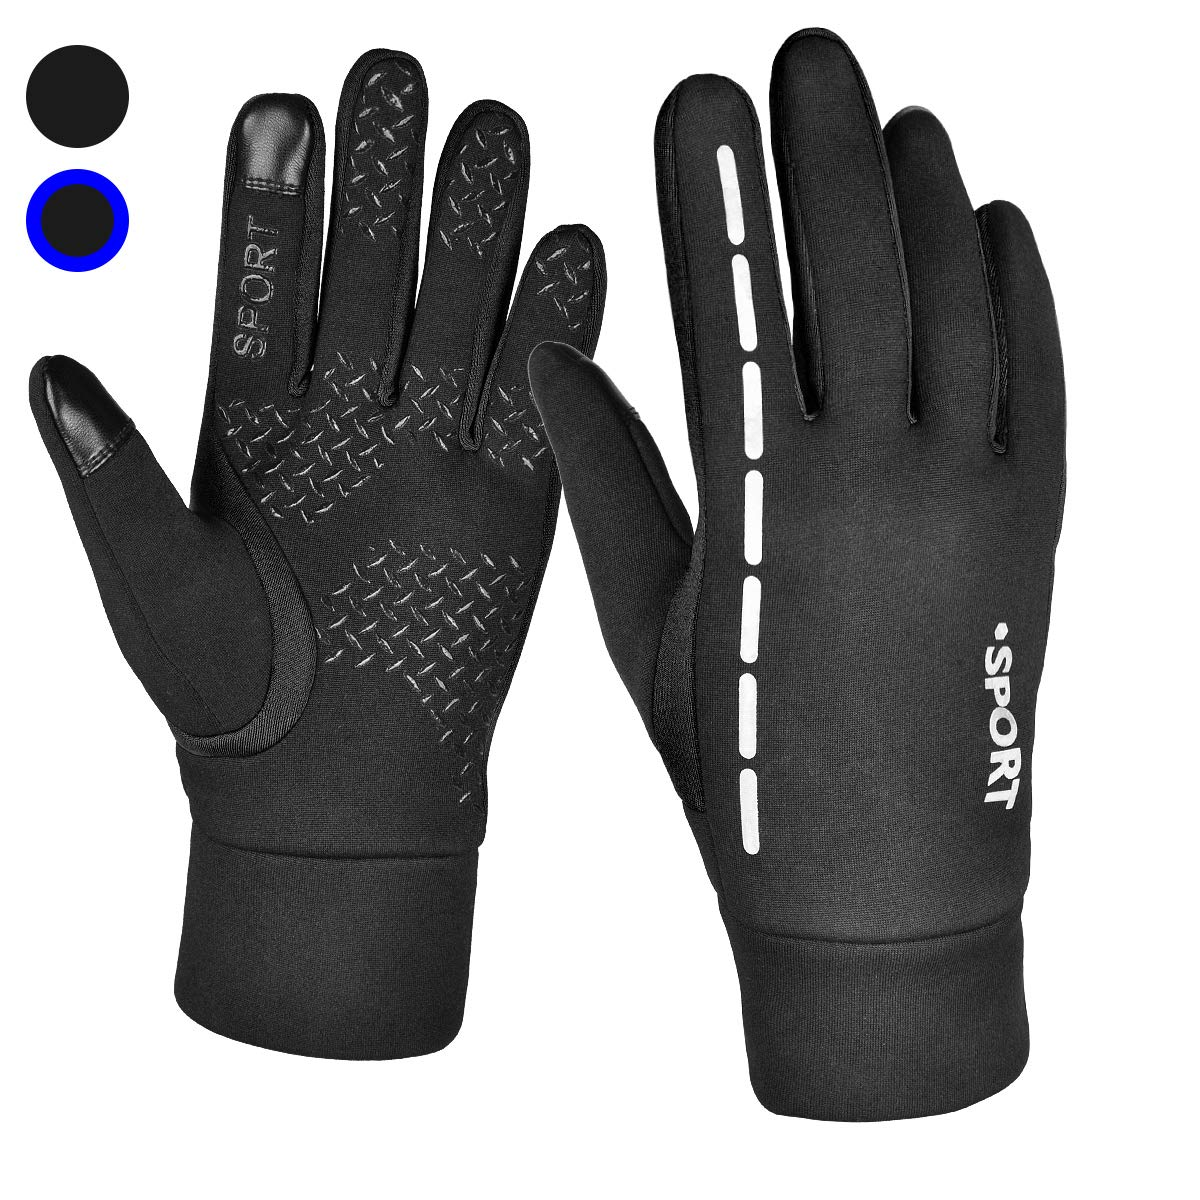 Reflective Design Running Gloves, Full Finger Touchscreen in Winter Outdoor Gel Bike Thin Gloves, Waterproof and Windproof Warm Gloves for Men Women